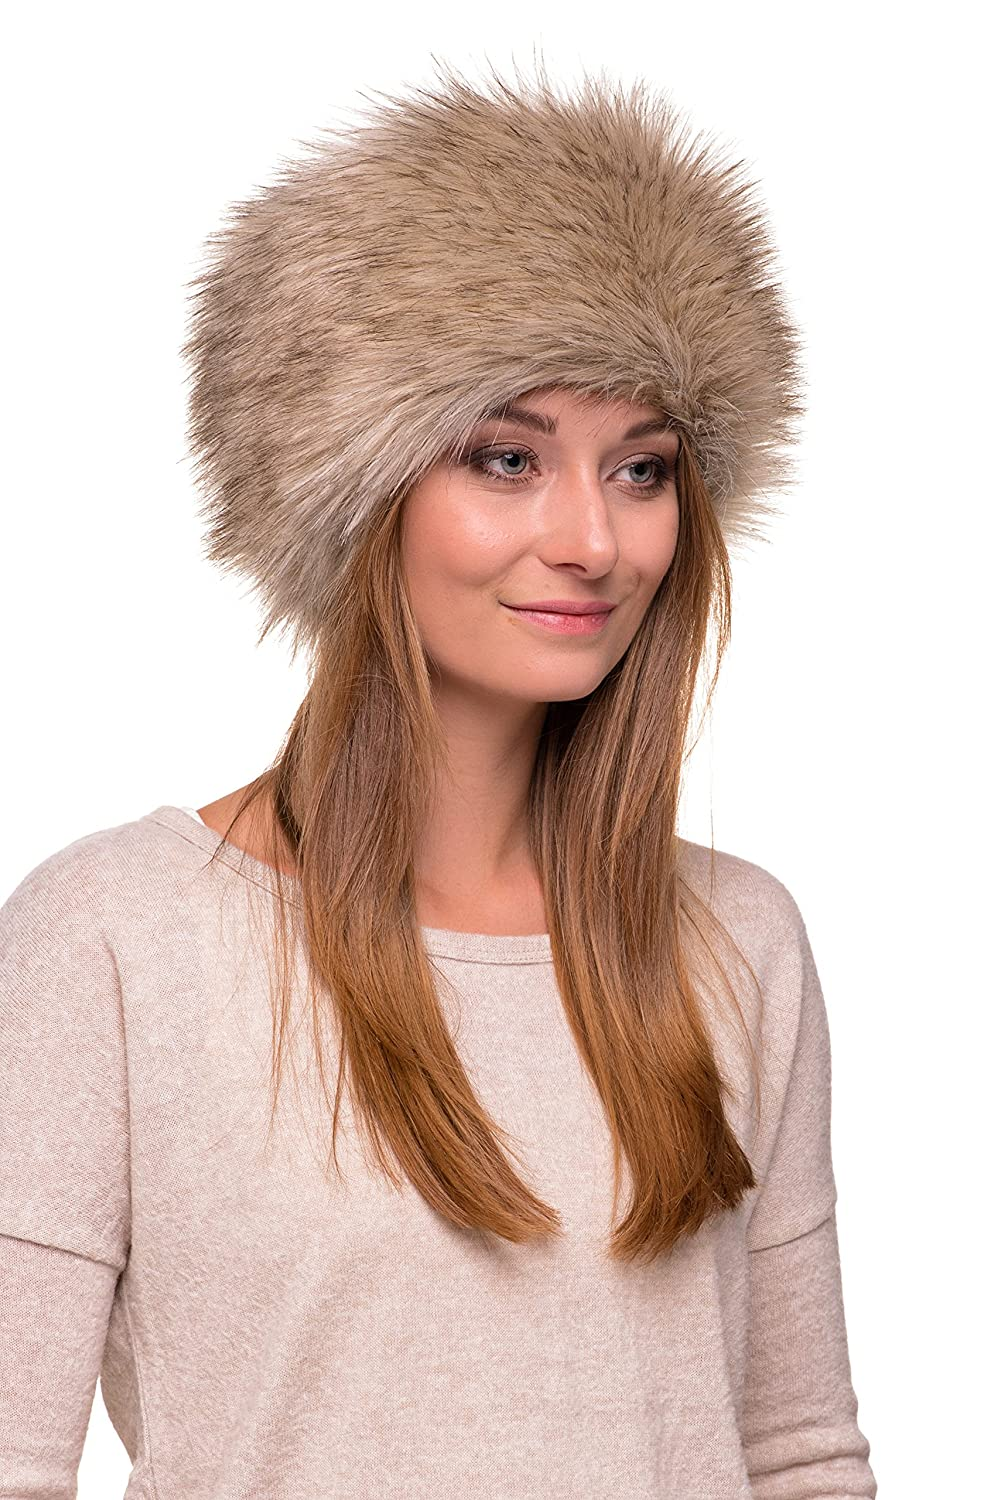 e7d0df29c50 Futrzane Faux Fur Cossak Russian Style Hat for Ladies Winter Hat for Women  Futrzane-toczek larger image